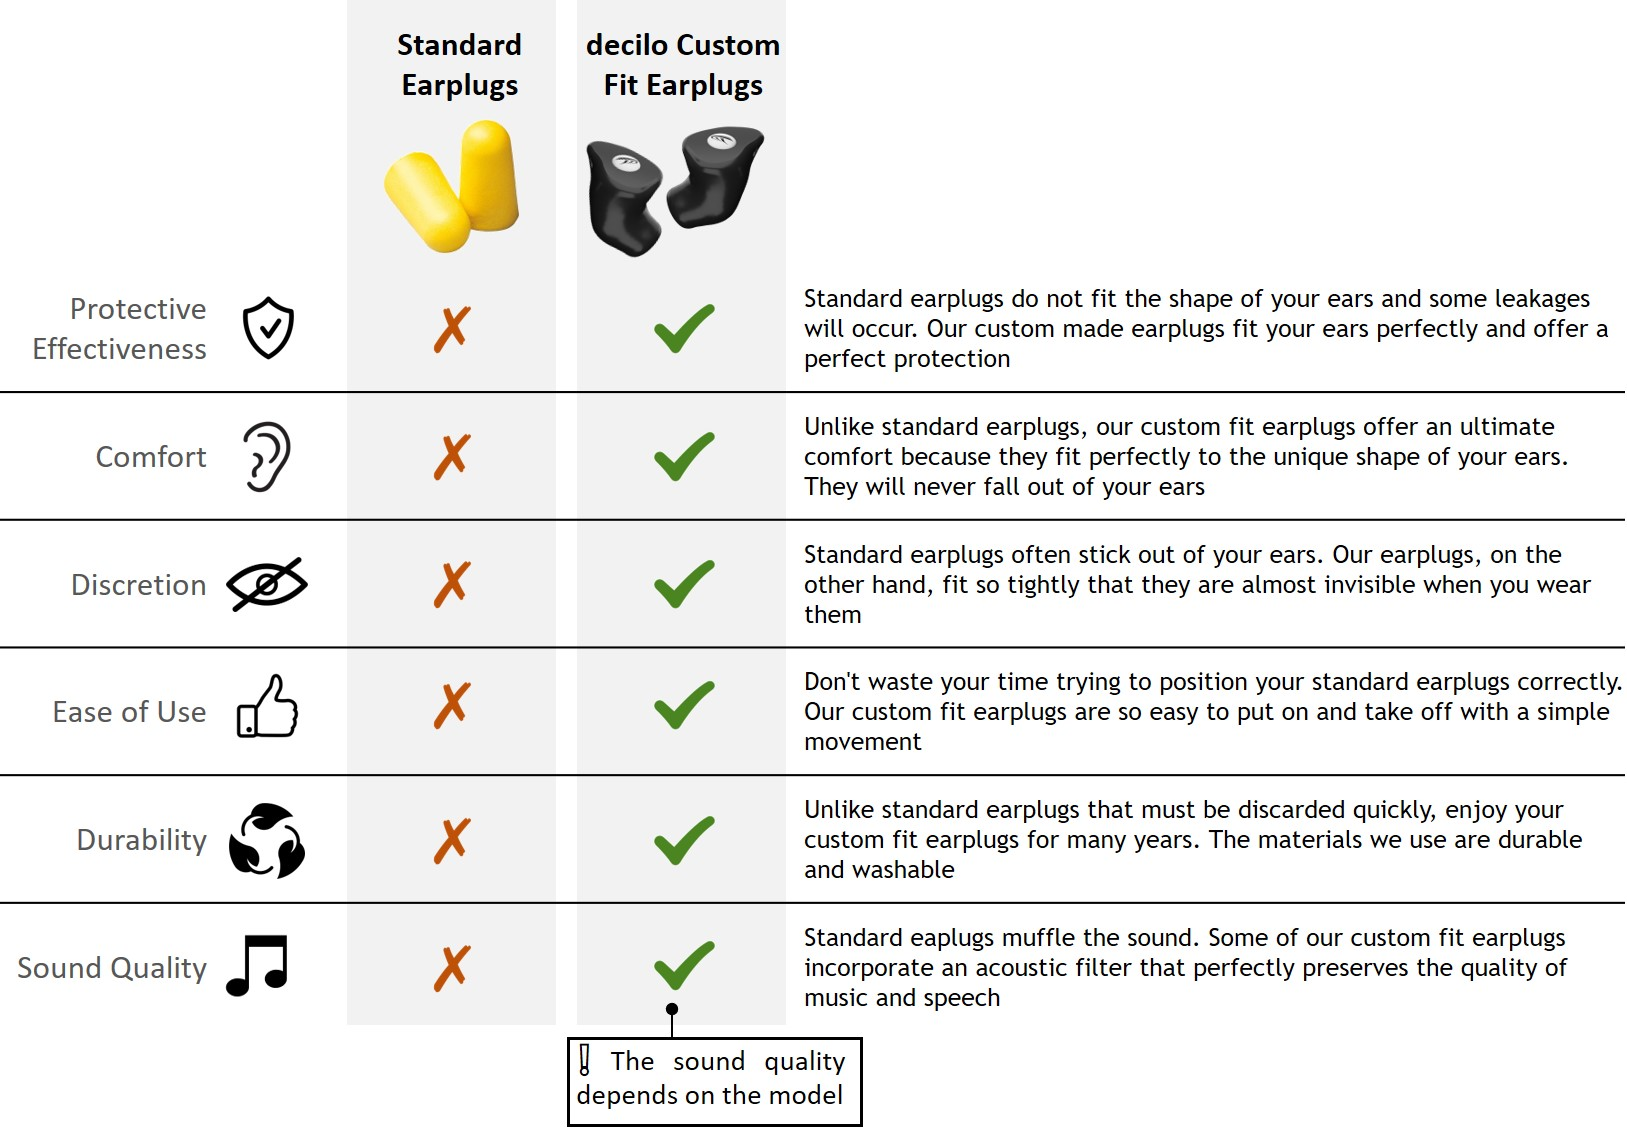 difference between standard earplugs and custom made earplugs